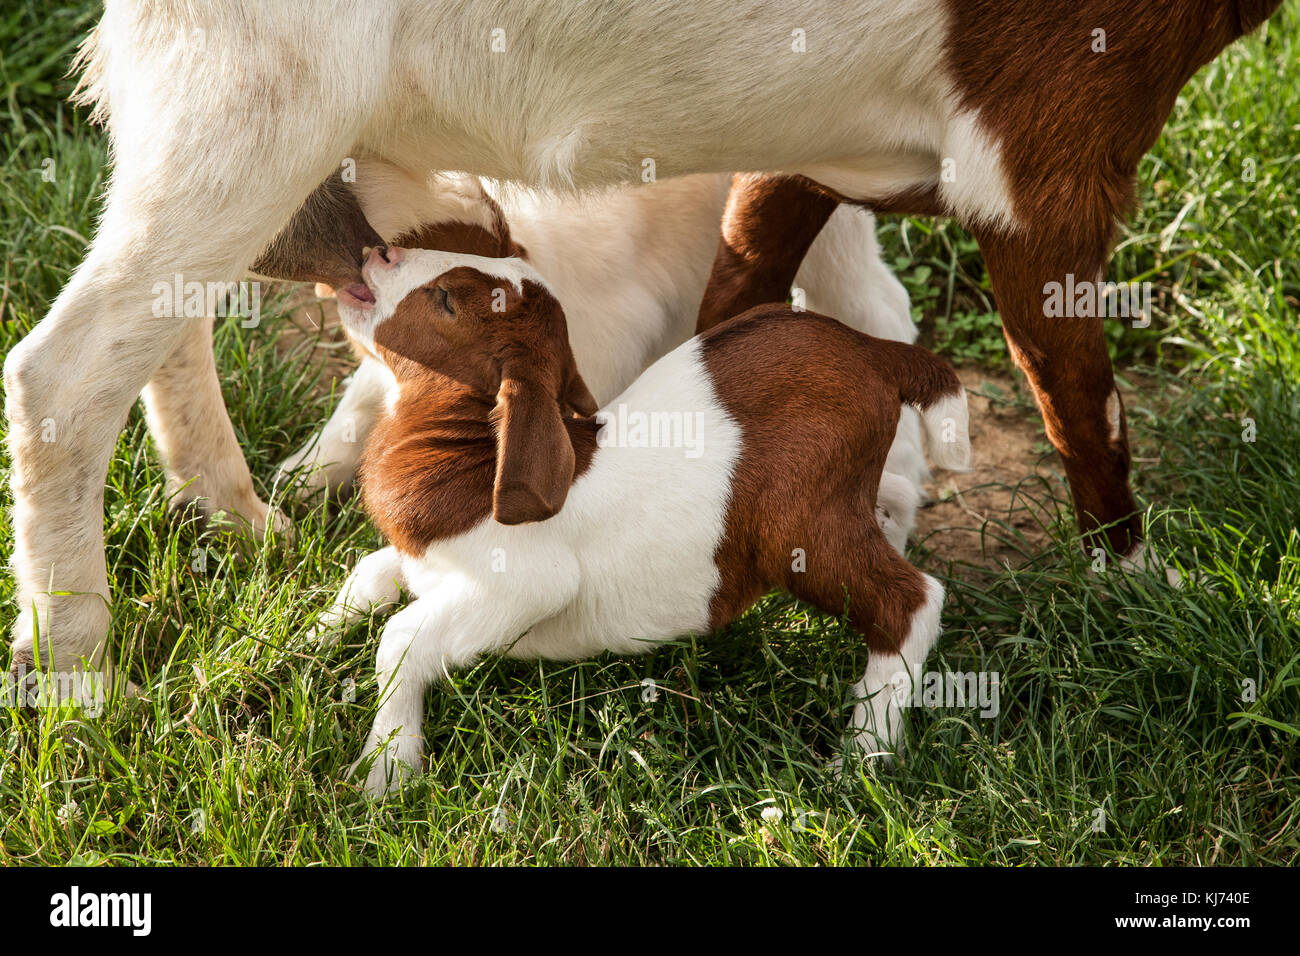 Baby goat nursing from mother goat on a farm, Lancaster County, Pennsylvania, USA, United States, animals isolated - Stock Image